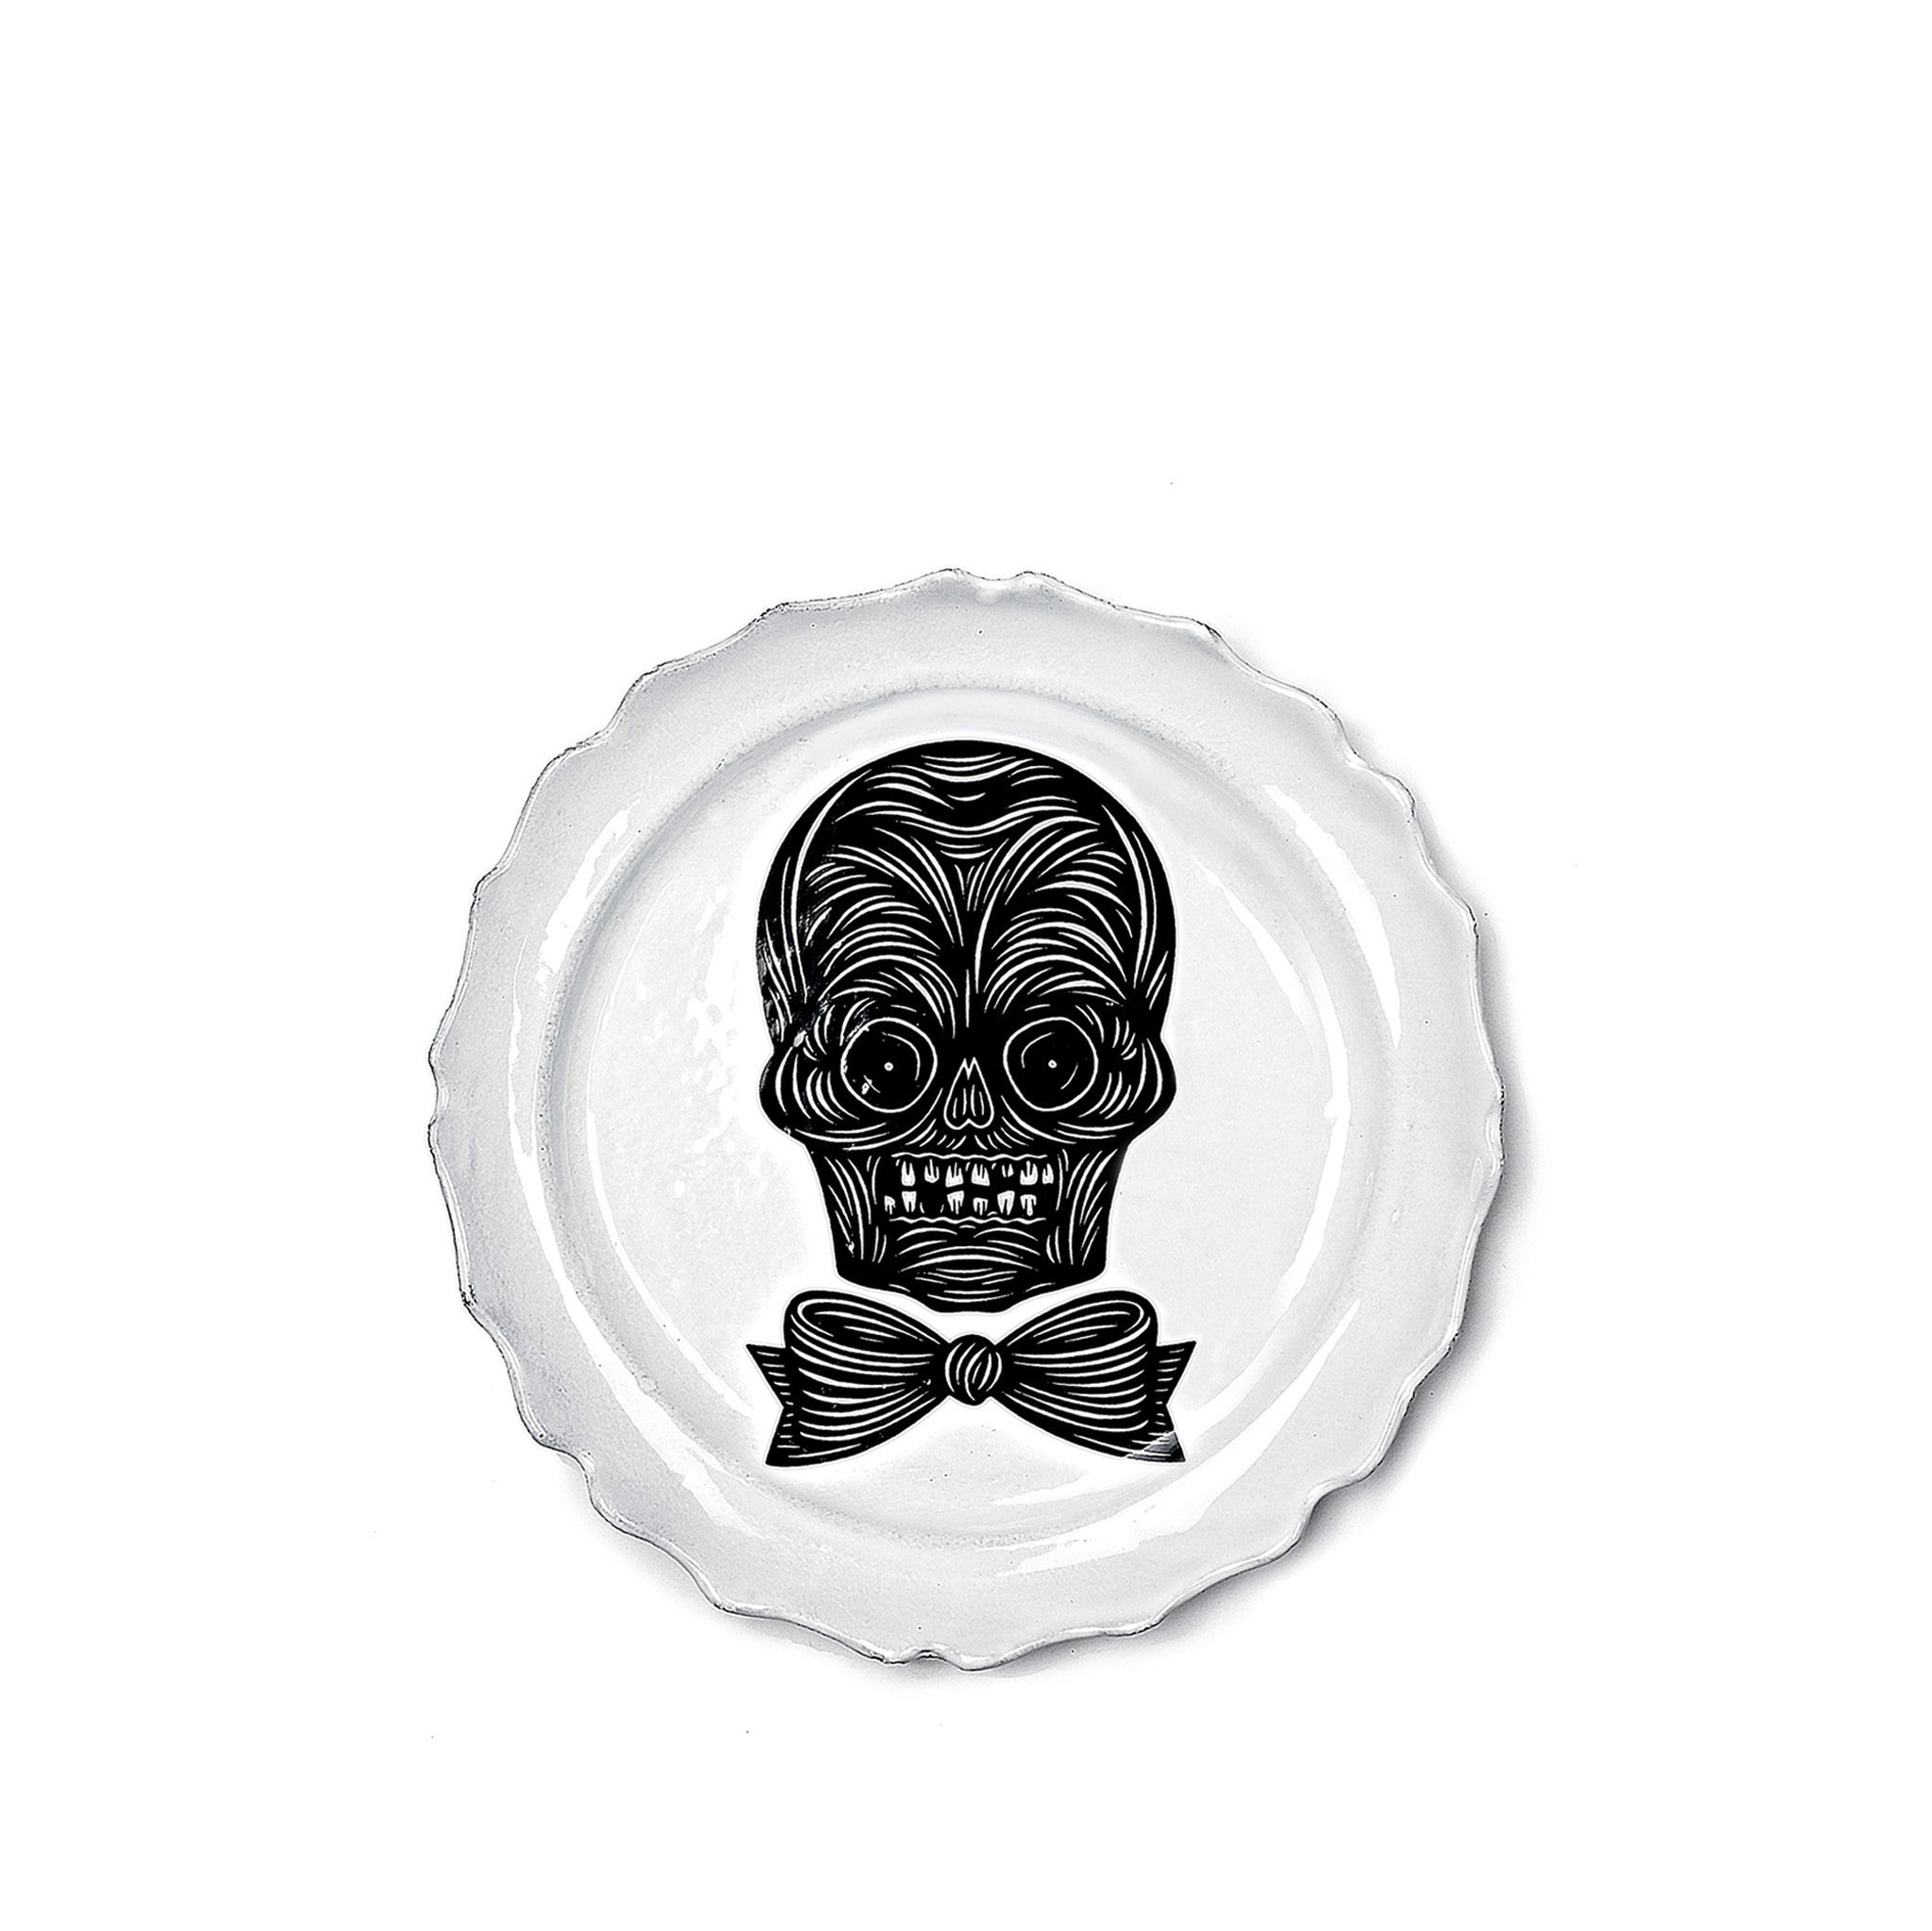 Male Skull Dinner Plate by Astier de Villatte